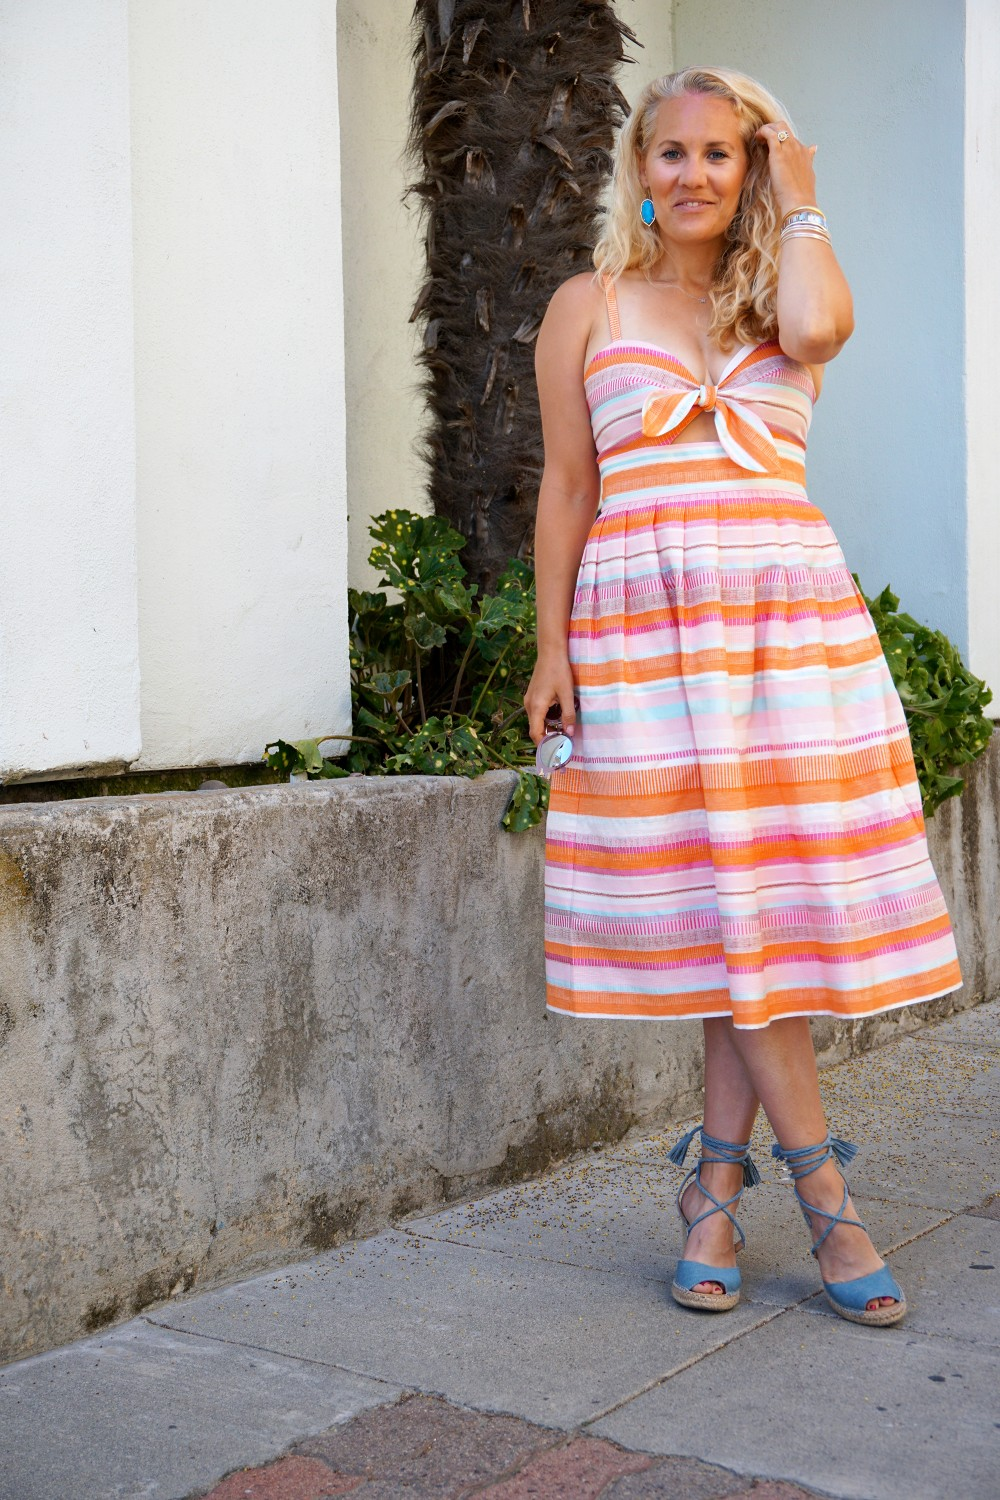 Spring Stripe Dress-Stripes and Cut Outs-Outfit Inspiration-Bay Area Blogger-Summer Dress-Sunday Best Outfit Inspiration-Have Need Want 3